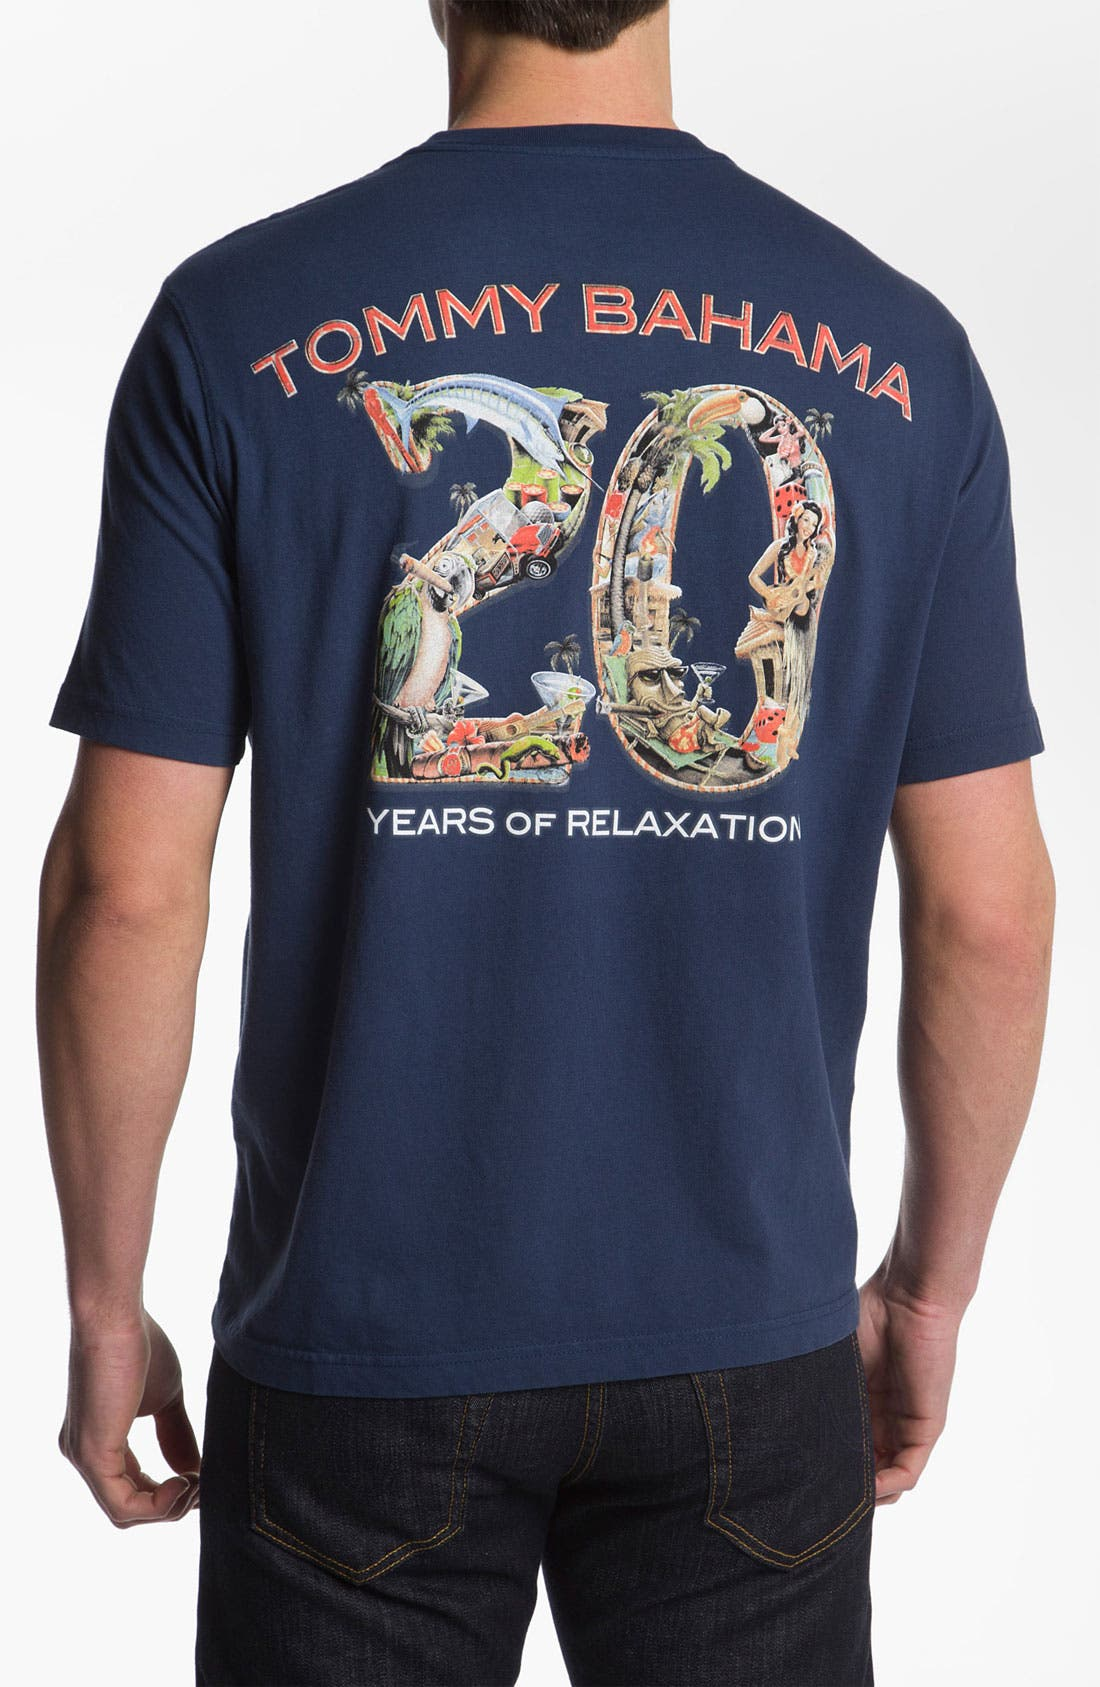 Alternate Image 1 Selected - Tommy Bahama '20 Years of Relaxation' Cotton T-Shirt